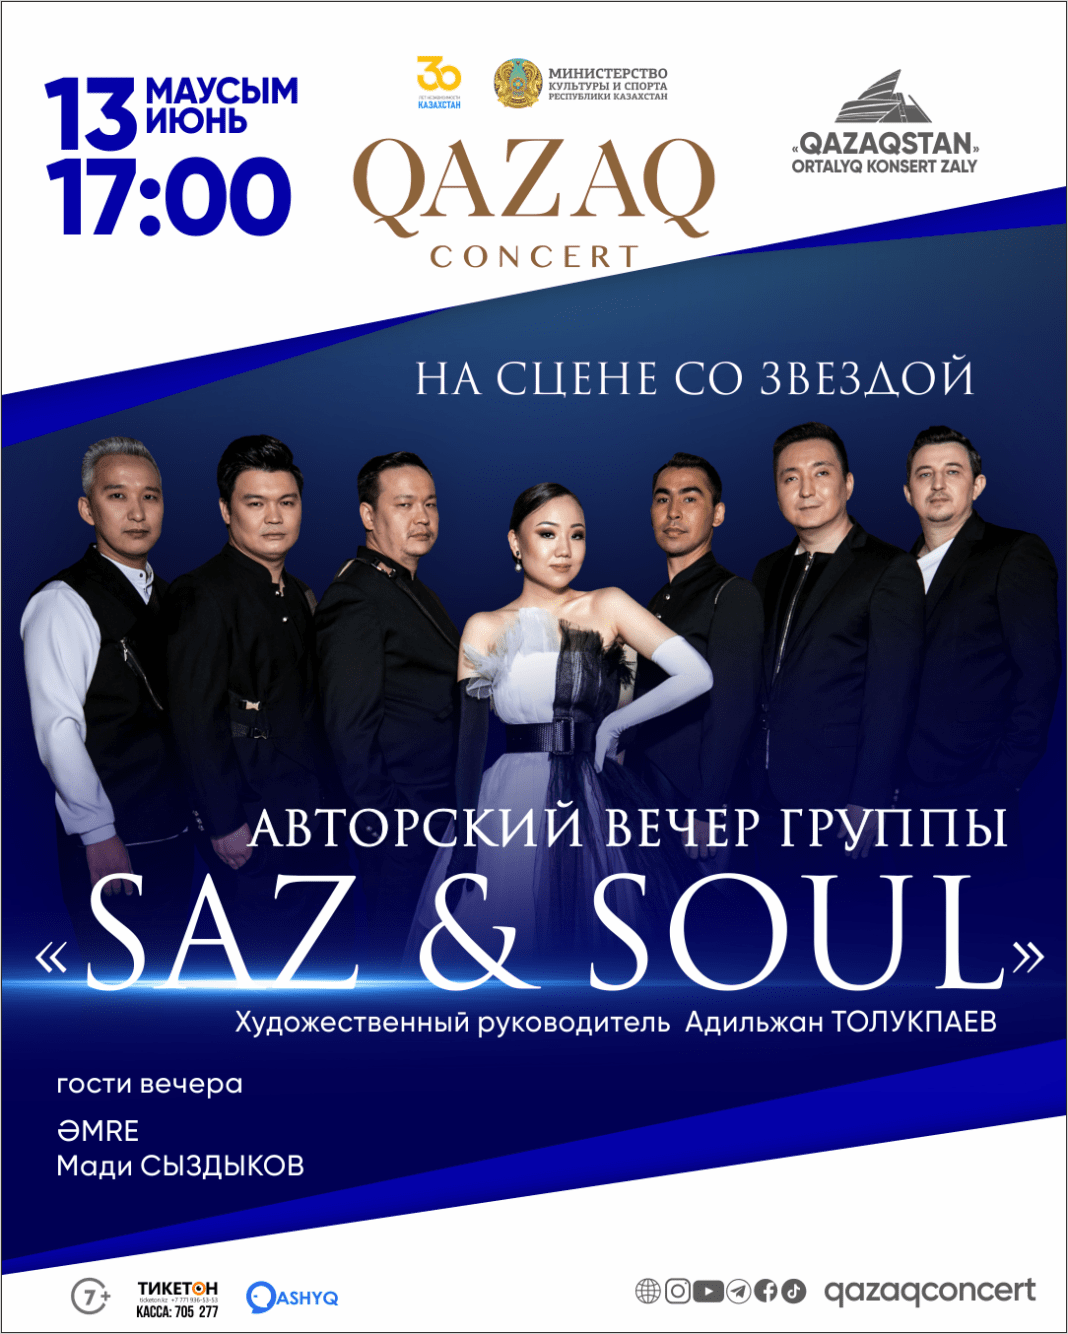 """""""They are my soulmates"""": Zarina Bozhakova to become lead singer of """"Saz&Soul"""" band"""